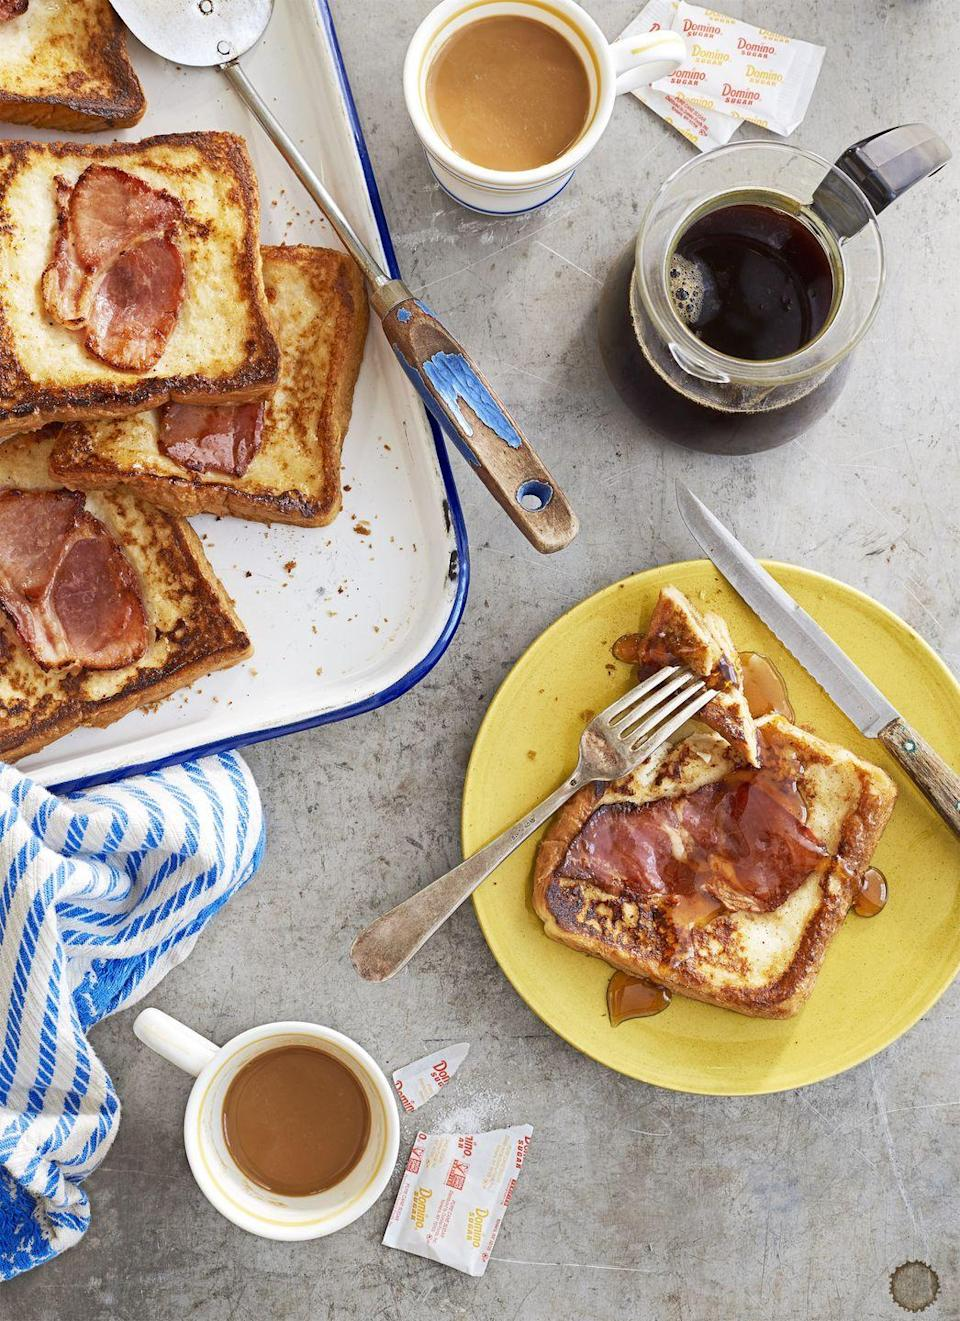 """<p>Just add a slice of ham to this classic French toast recipe to give a savory kick to all the sweetness. </p><p><strong><a href=""""https://www.countryliving.com/food-drinks/recipes/a41636/country-ham-french-toast-recipe/"""" rel=""""nofollow noopener"""" target=""""_blank"""" data-ylk=""""slk:Get the recipe"""" class=""""link rapid-noclick-resp"""">Get the recipe</a>.</strong> </p>"""